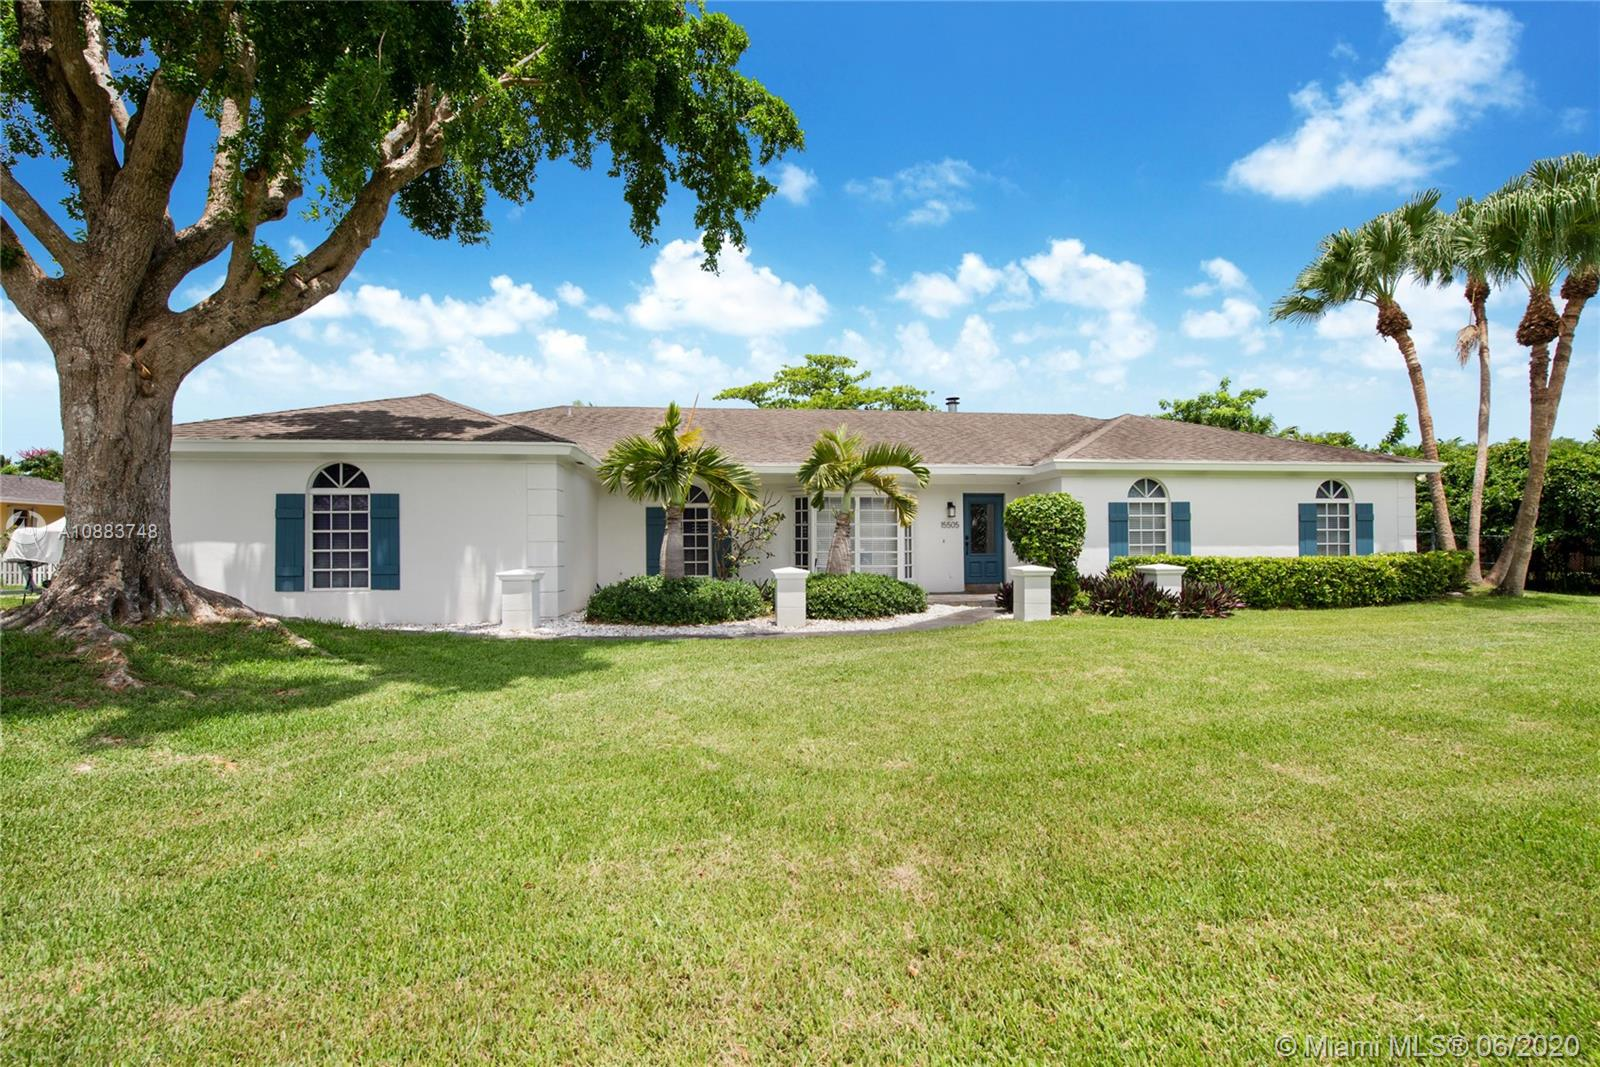 15505 SW 77th Ct, Palmetto Bay, Florida 33157, 5 Bedrooms Bedrooms, ,3 BathroomsBathrooms,Residential,For Sale,15505 SW 77th Ct,A10883748